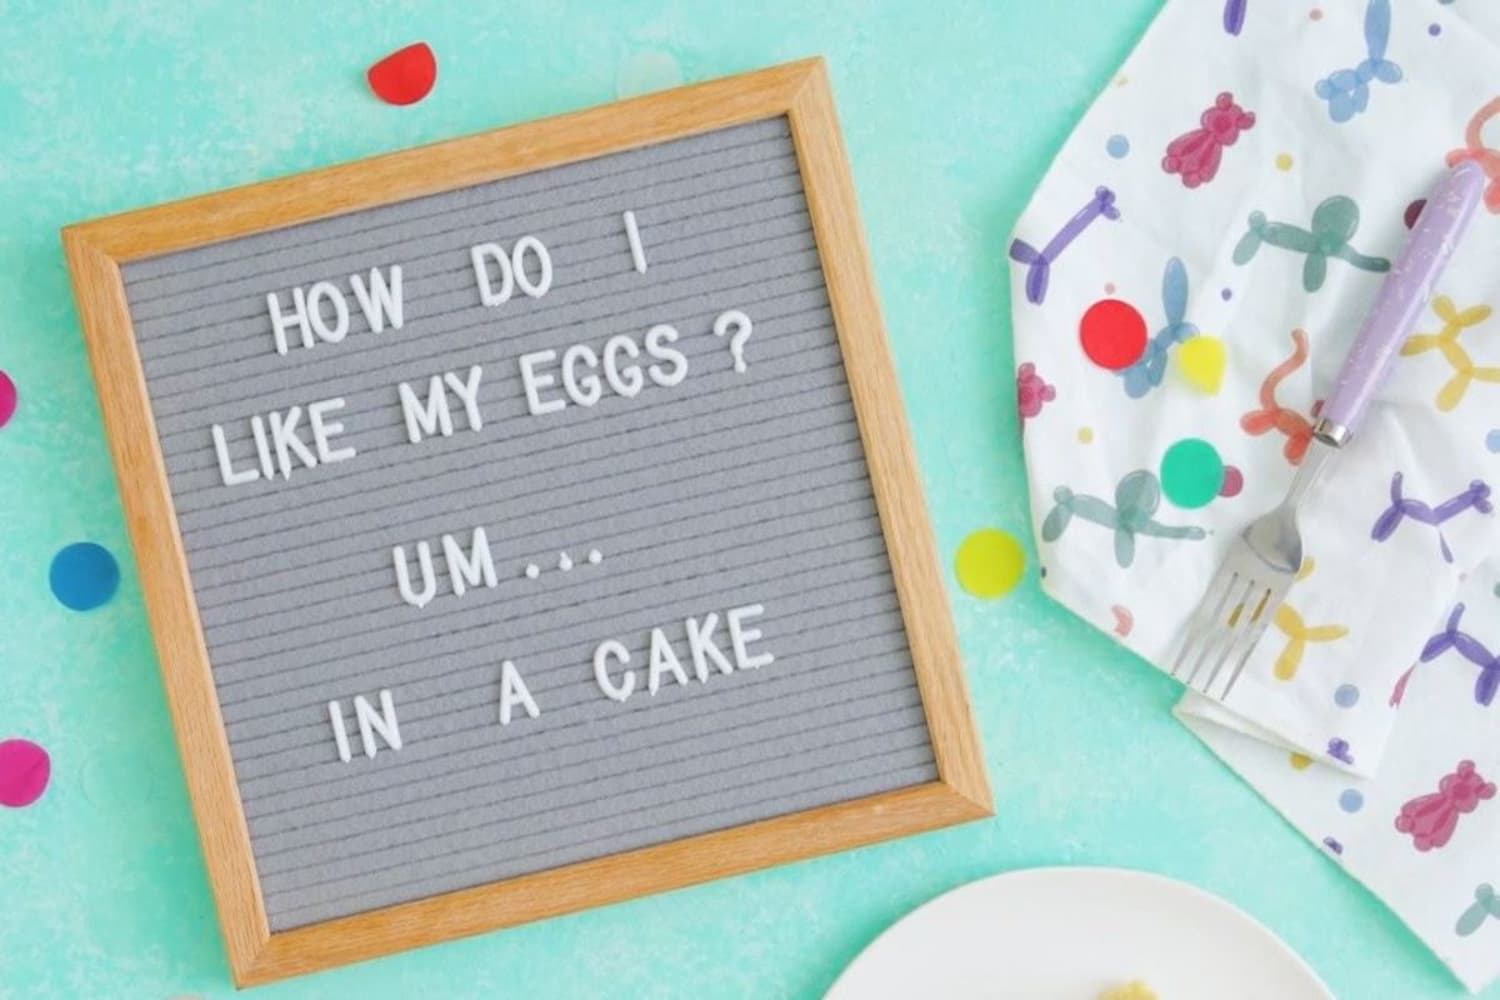 Funny Food Sayings For Letter Boards Kitchn